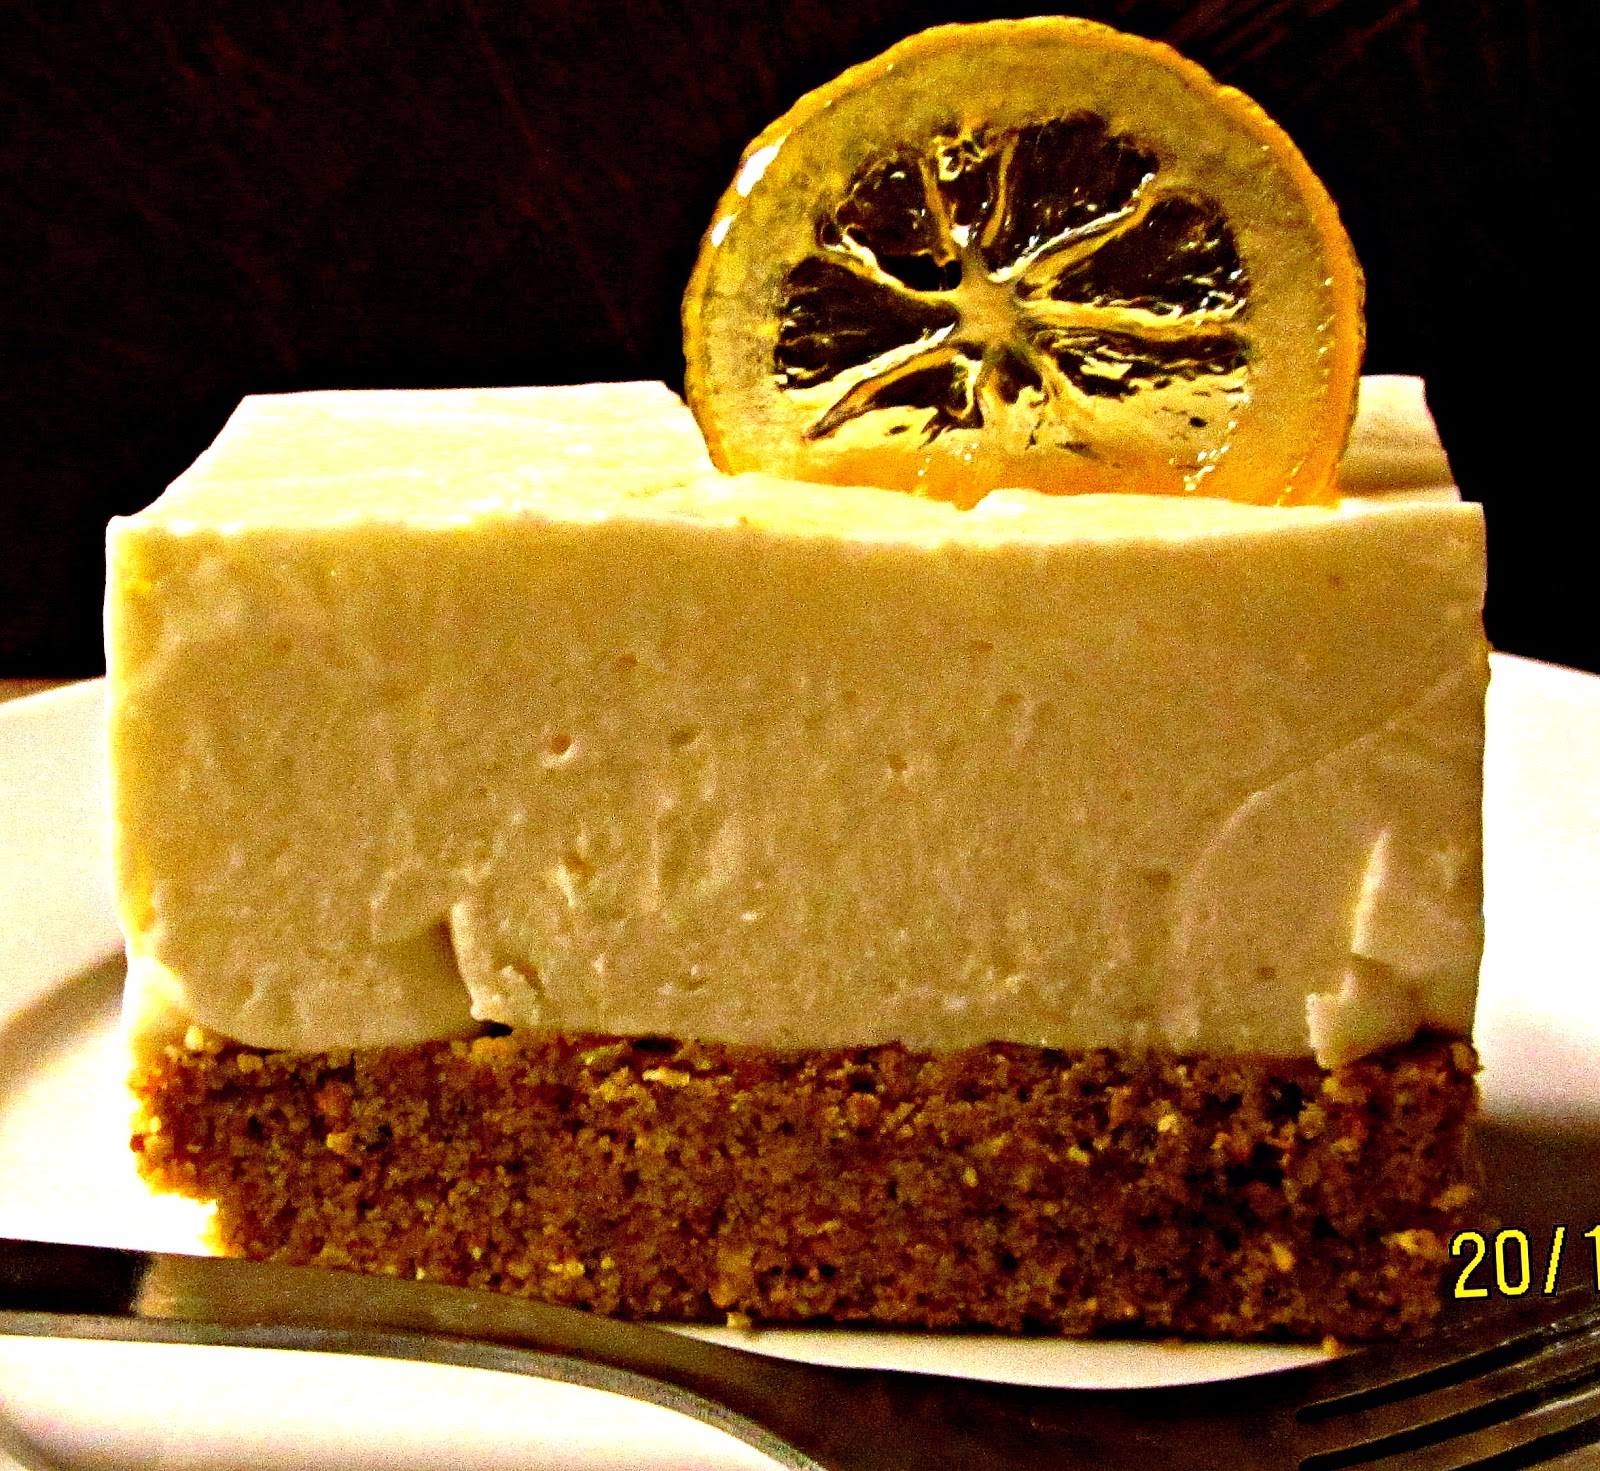 Lemon Rind Decoration